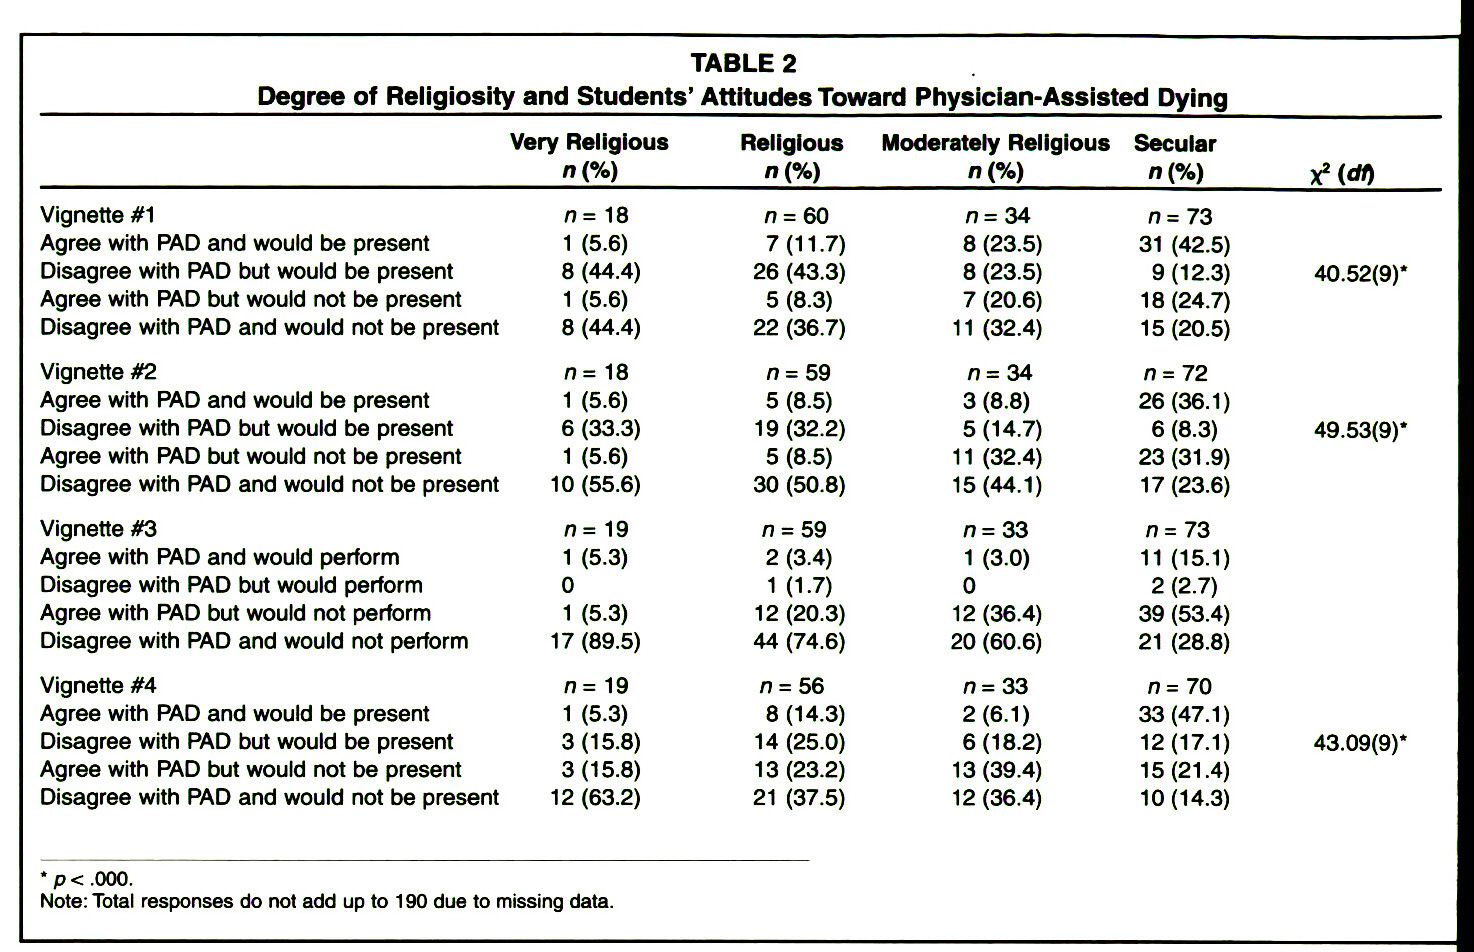 TABLE 2Degree of Religiosity and Students' Attitudes Toward Physician-Assisted Dying